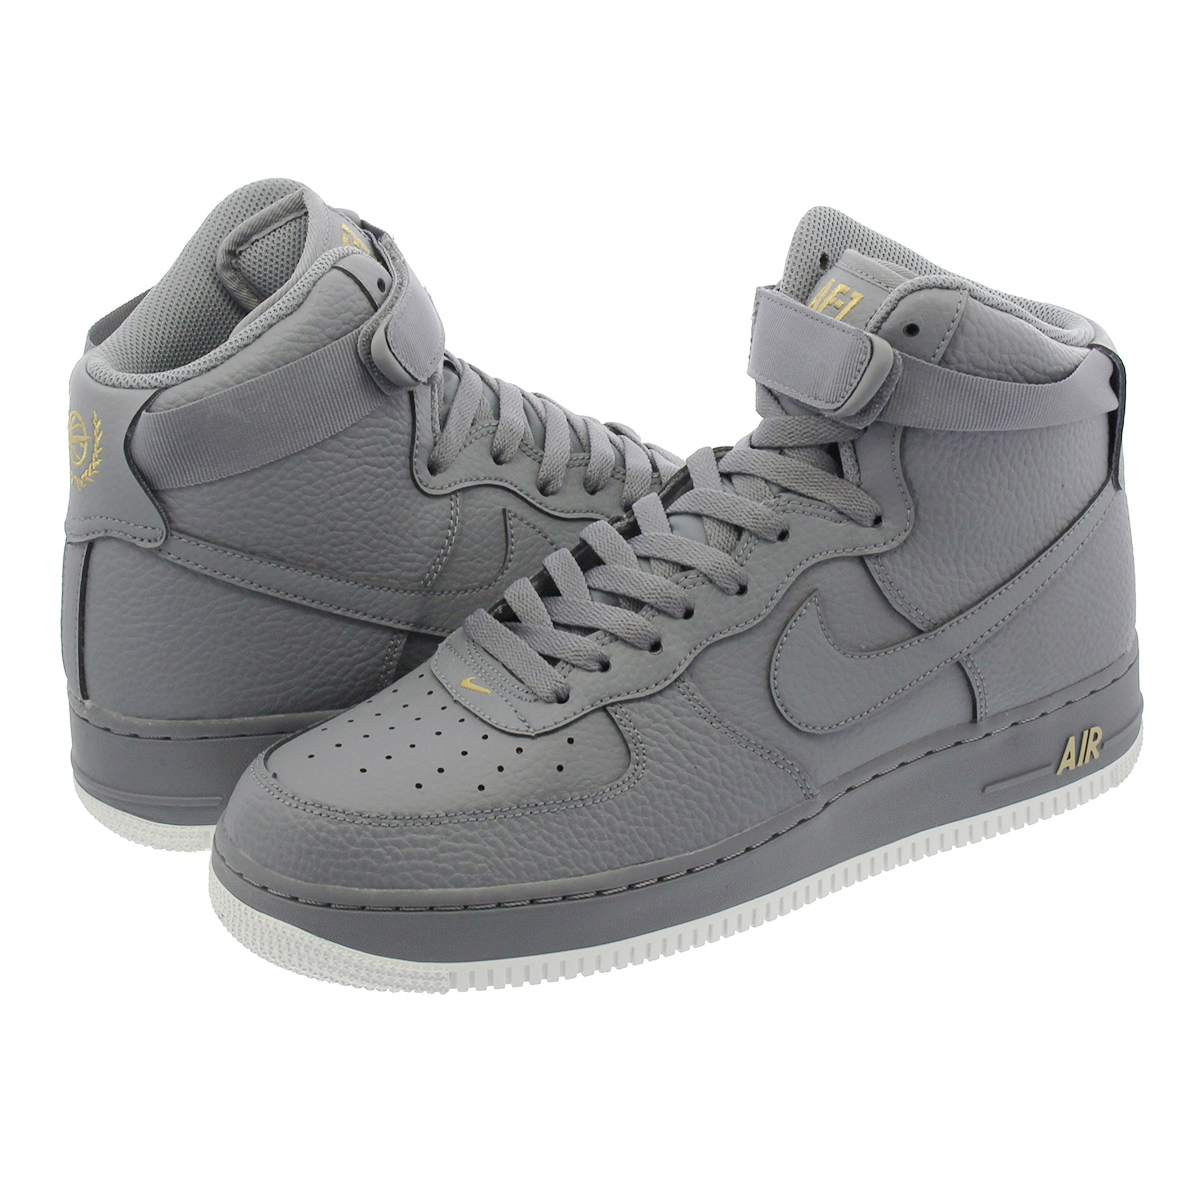 NIKE AIR FORCE 1 HIGH 07 Nike air force 1 high 07 COOL GREY/SUMMIT  WHITE/METALLIC GOLD 315,121-049